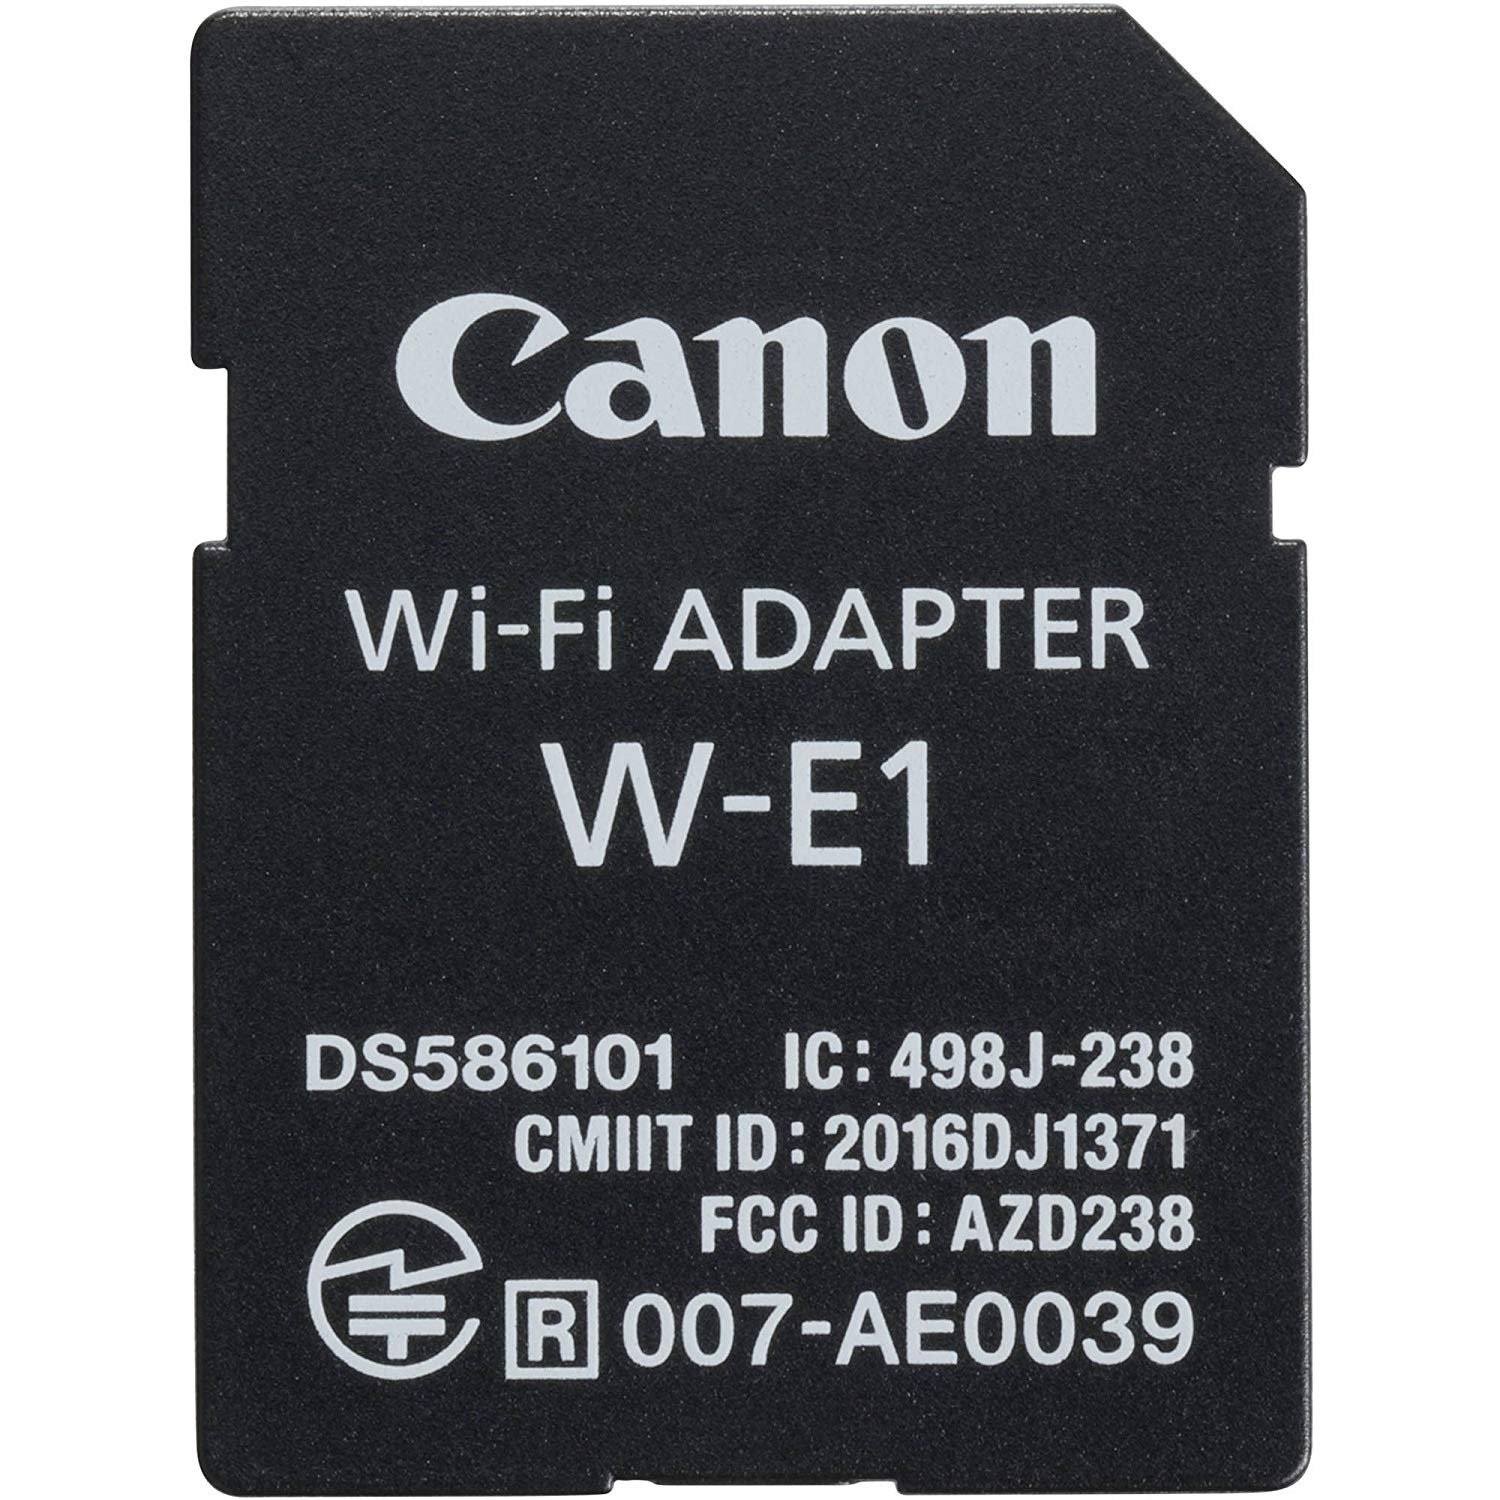 Canon Wi-Fi Adapter W-E1 Bundle with SD and CF Storage Wallet Pouch 1716C001 Ultrasoft Microfiber Cleaning Cloth!